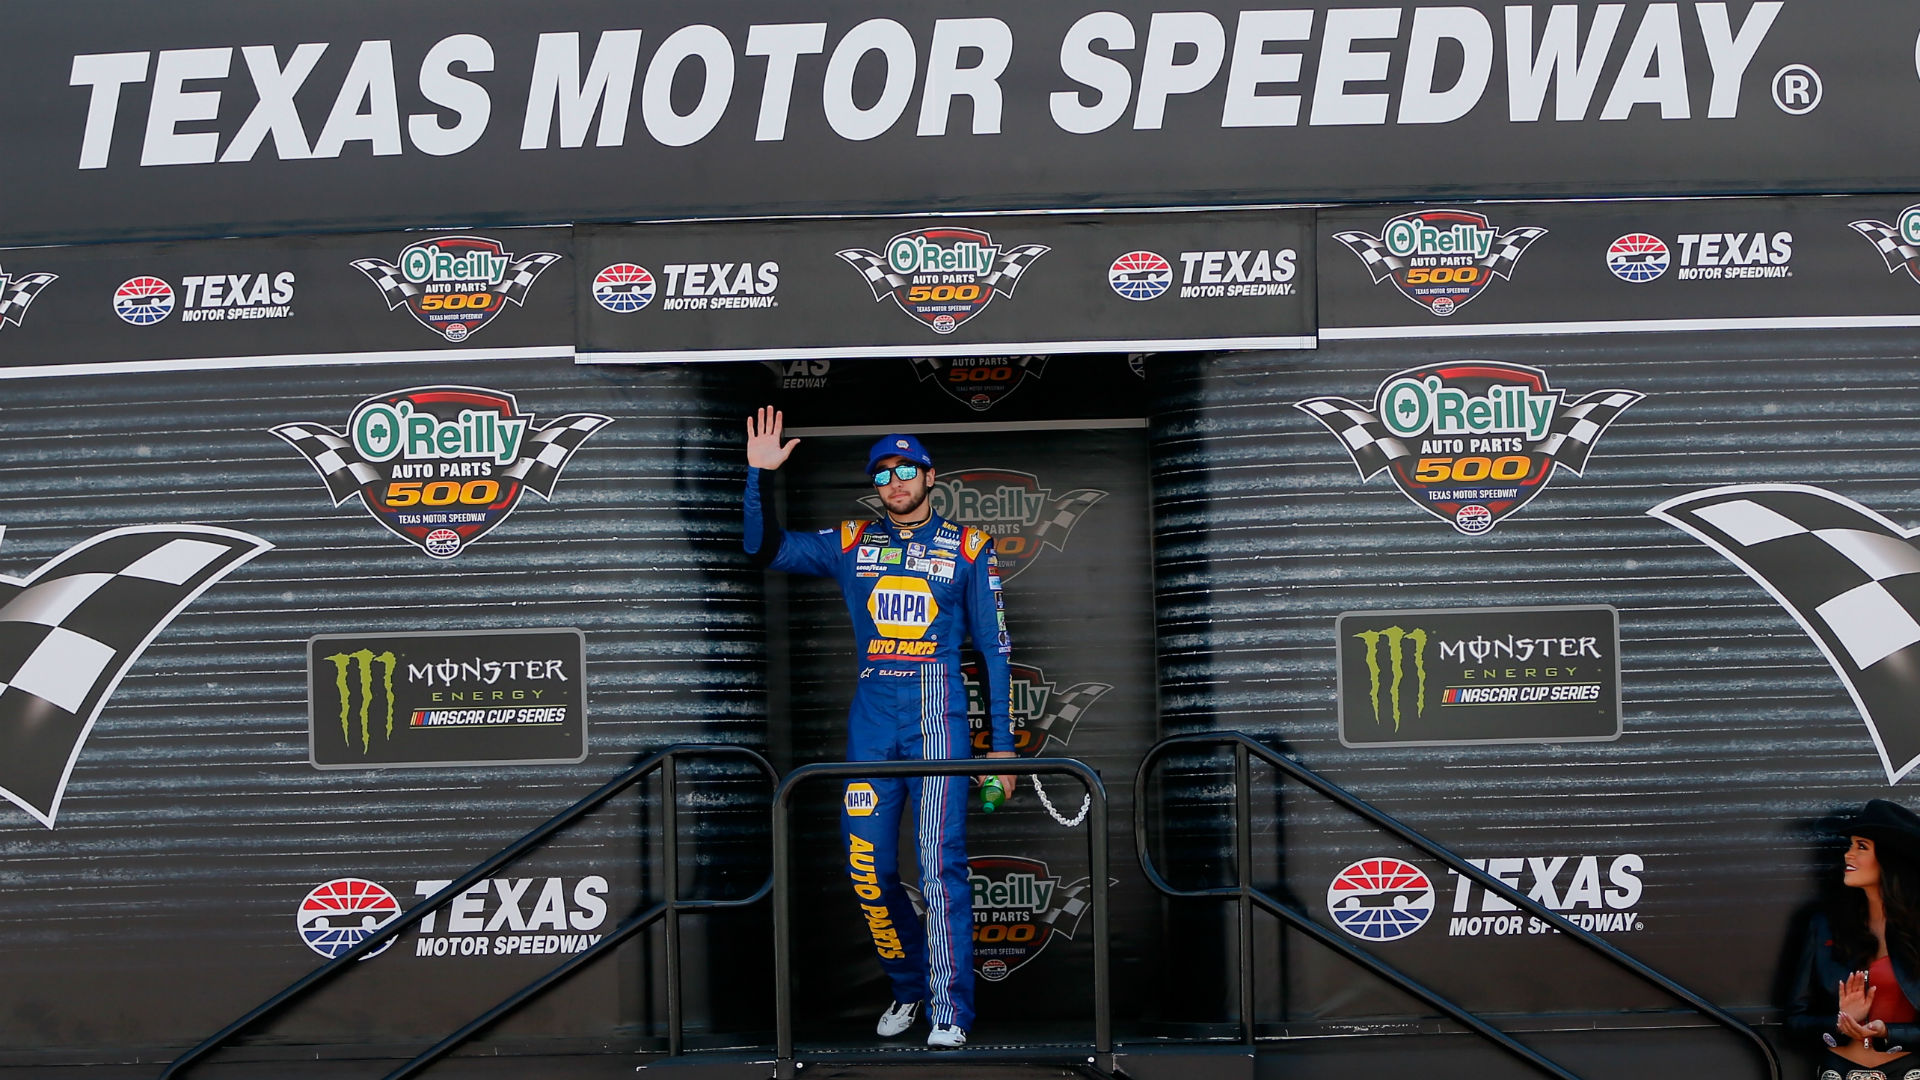 Lineup for texas motor speedway for Starting lineup texas motor speedway